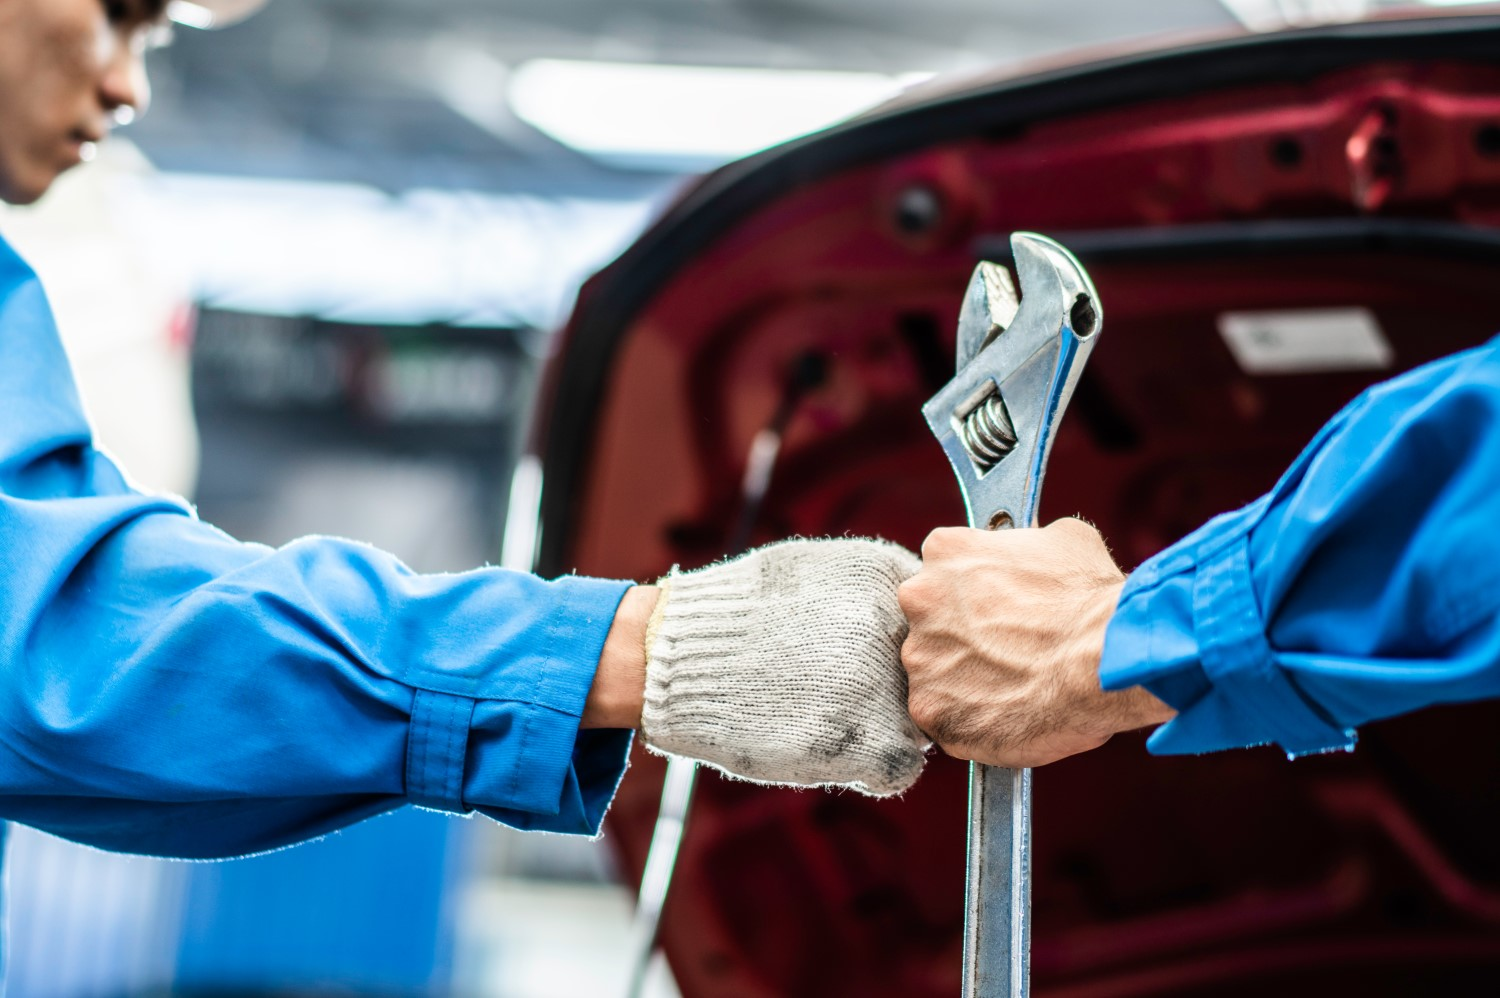 stock-photo-auto-mechanic-man-holding-wrench-bumping-fists-with-team-colleague-worker-in-auto-repair-shop-1730149930